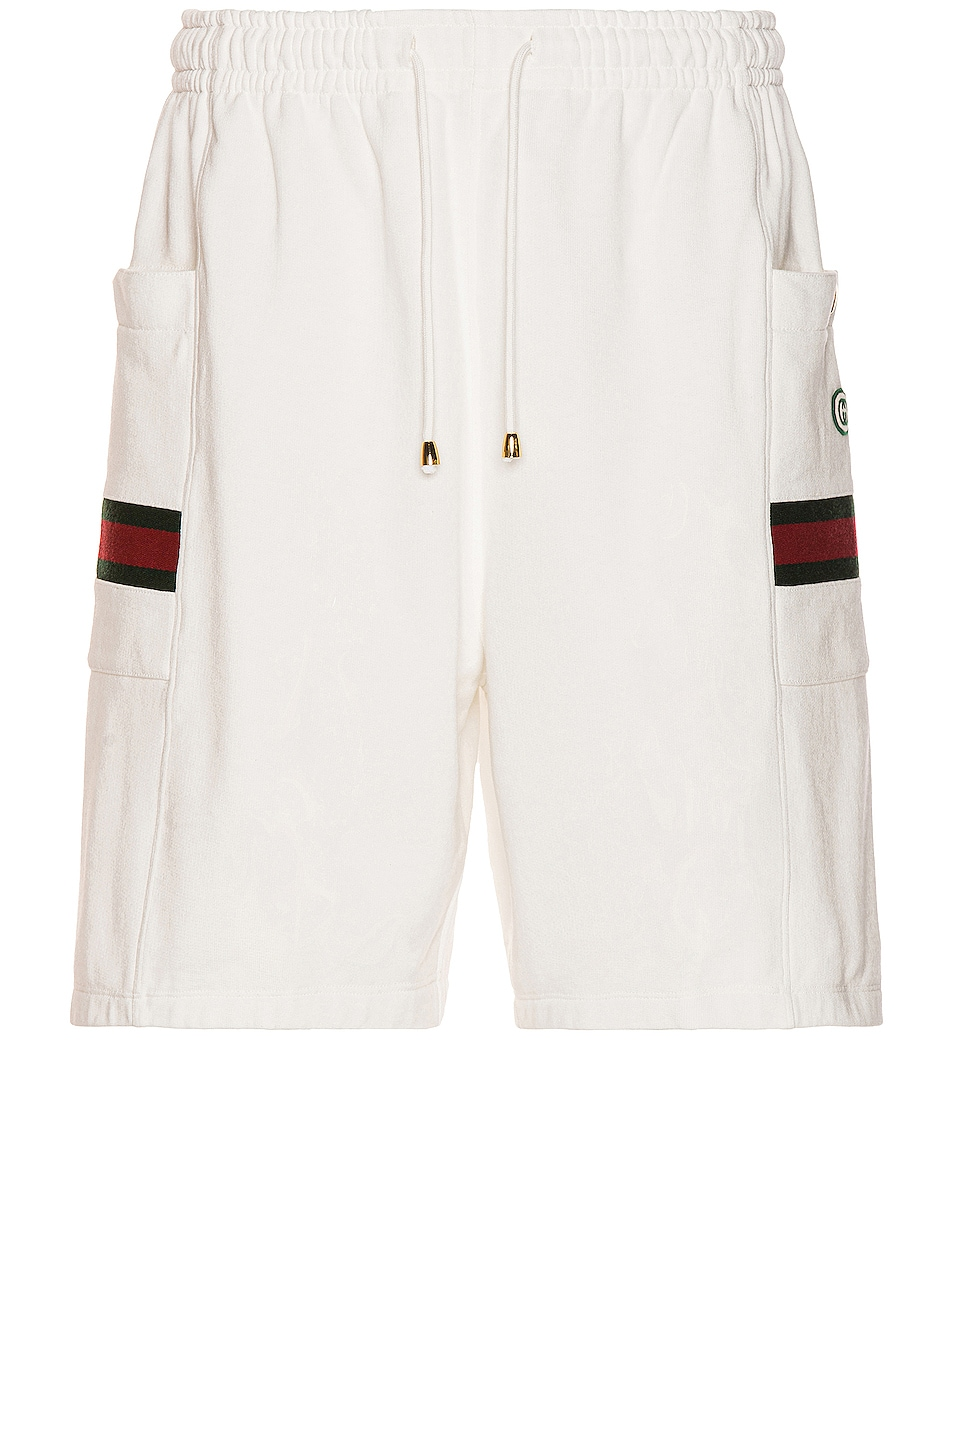 Image 1 of Gucci Shorts in Ivory & Green & Red